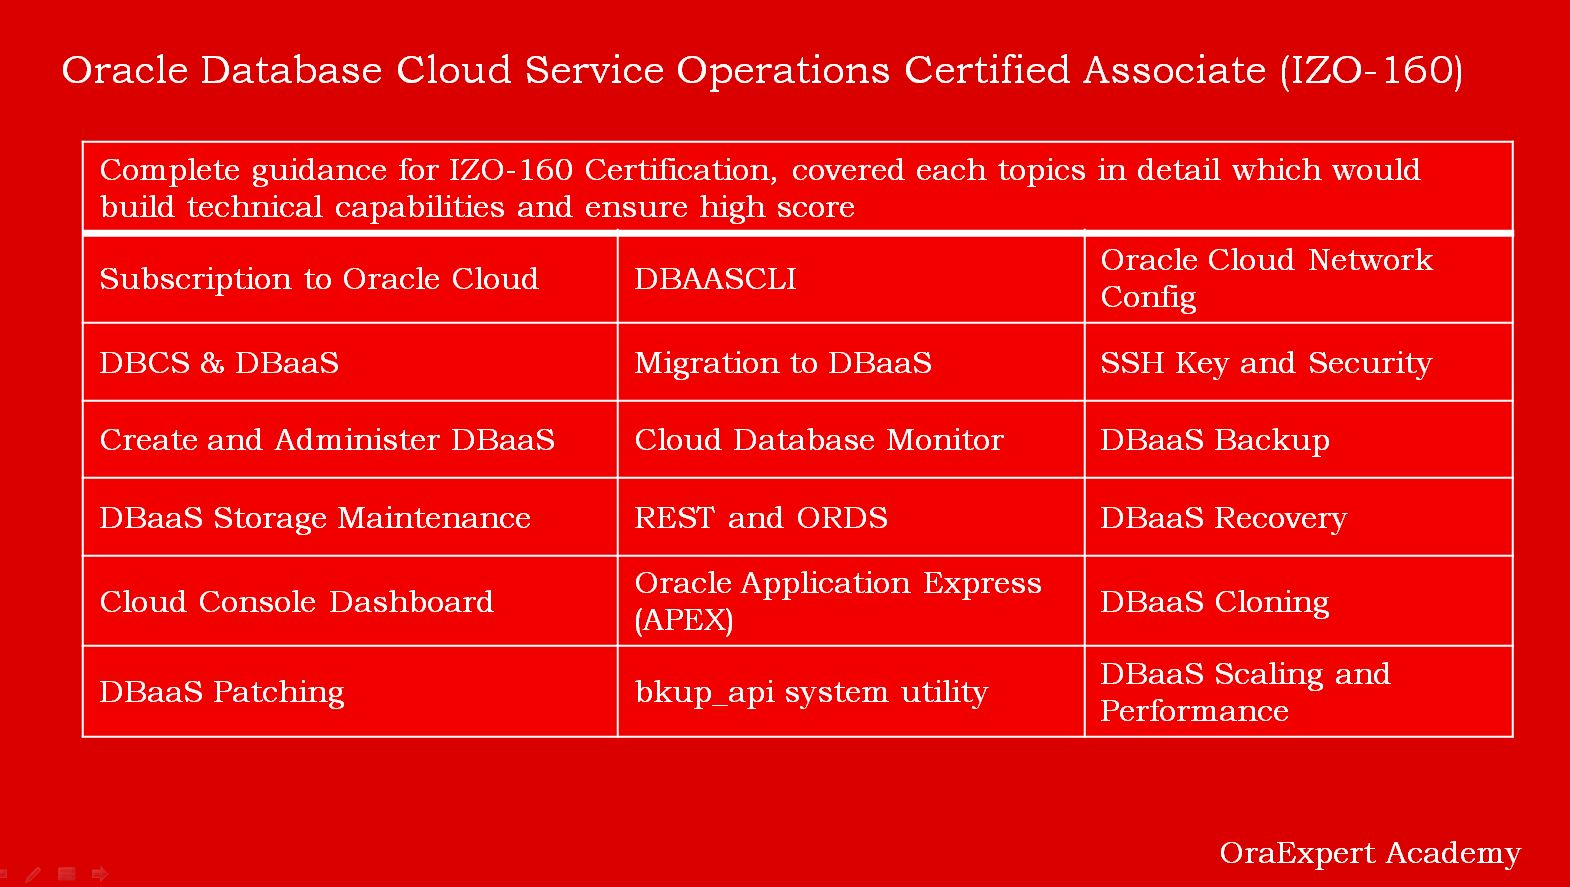 Oracle Database Cloud Service Operations Certified Associate Izo